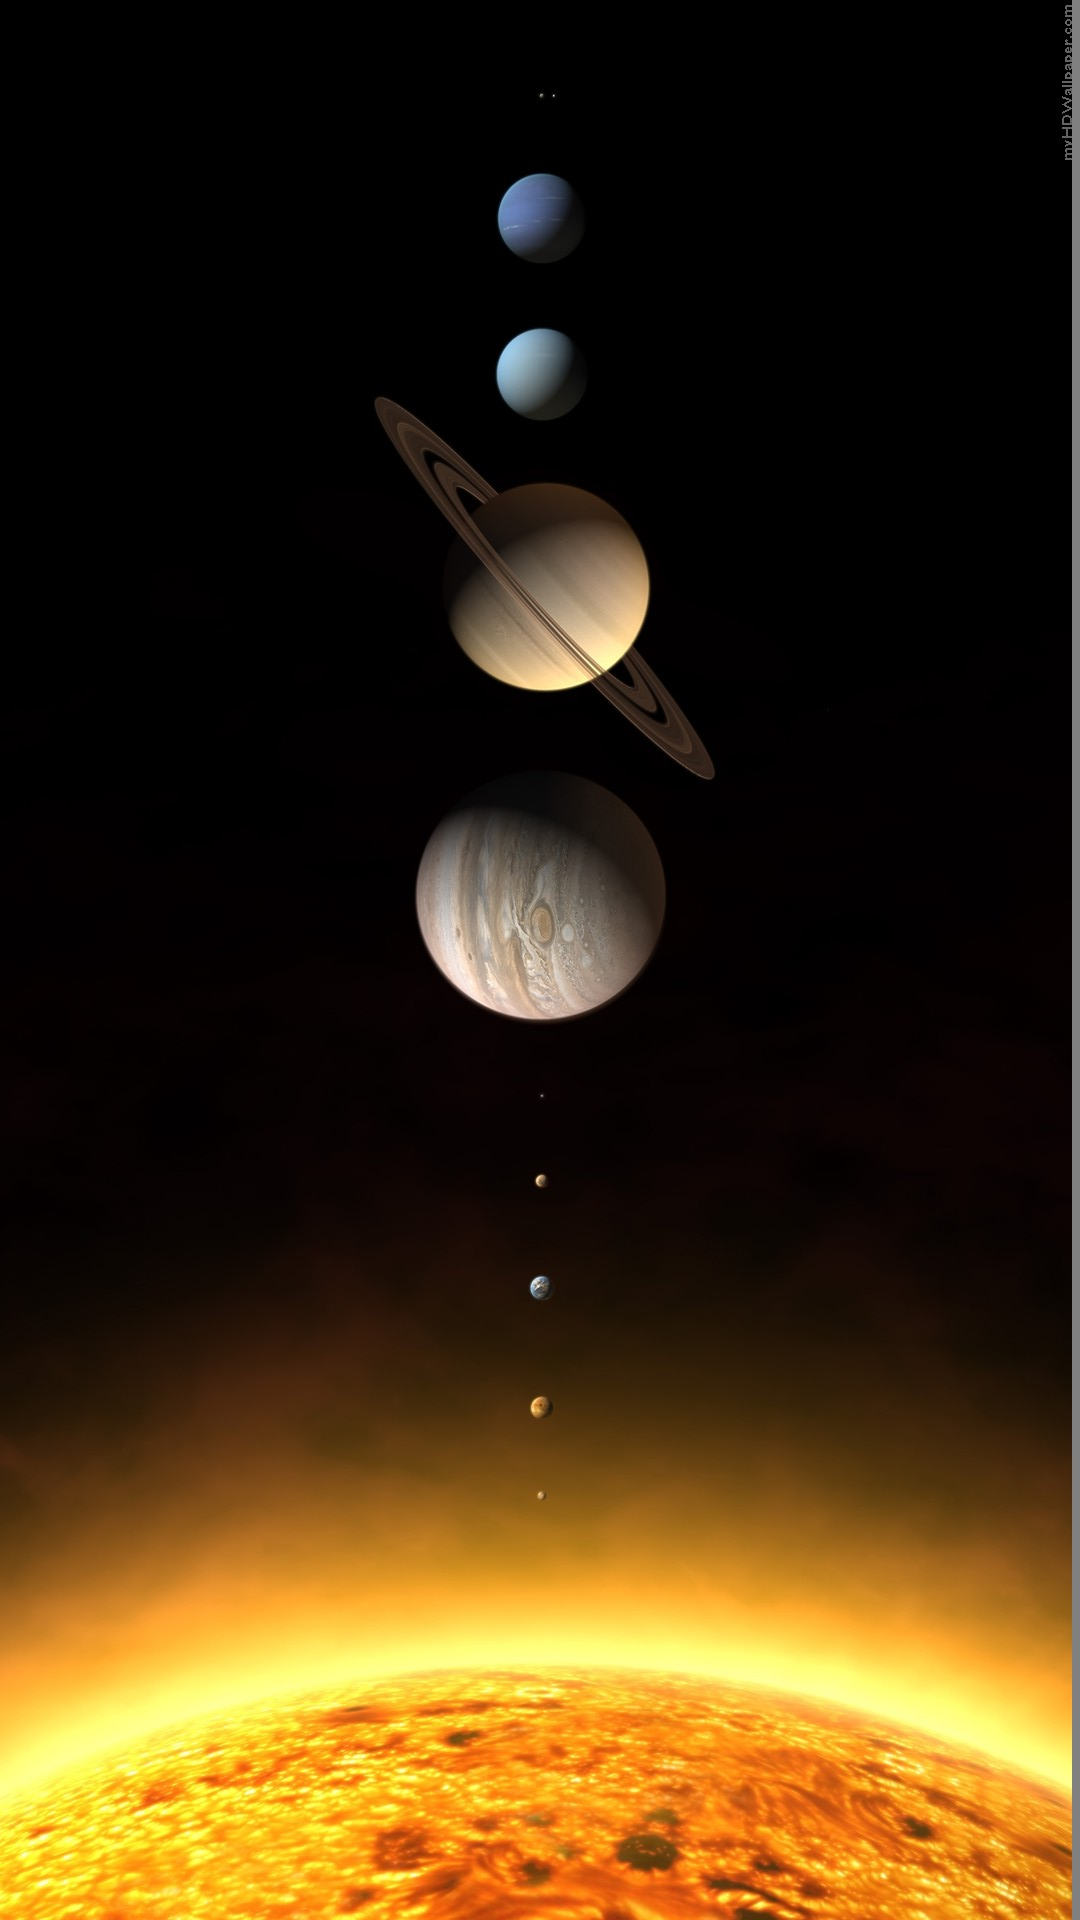 download Realistic Solar System Planets Rendering iPhone 6 HD 1080x1920